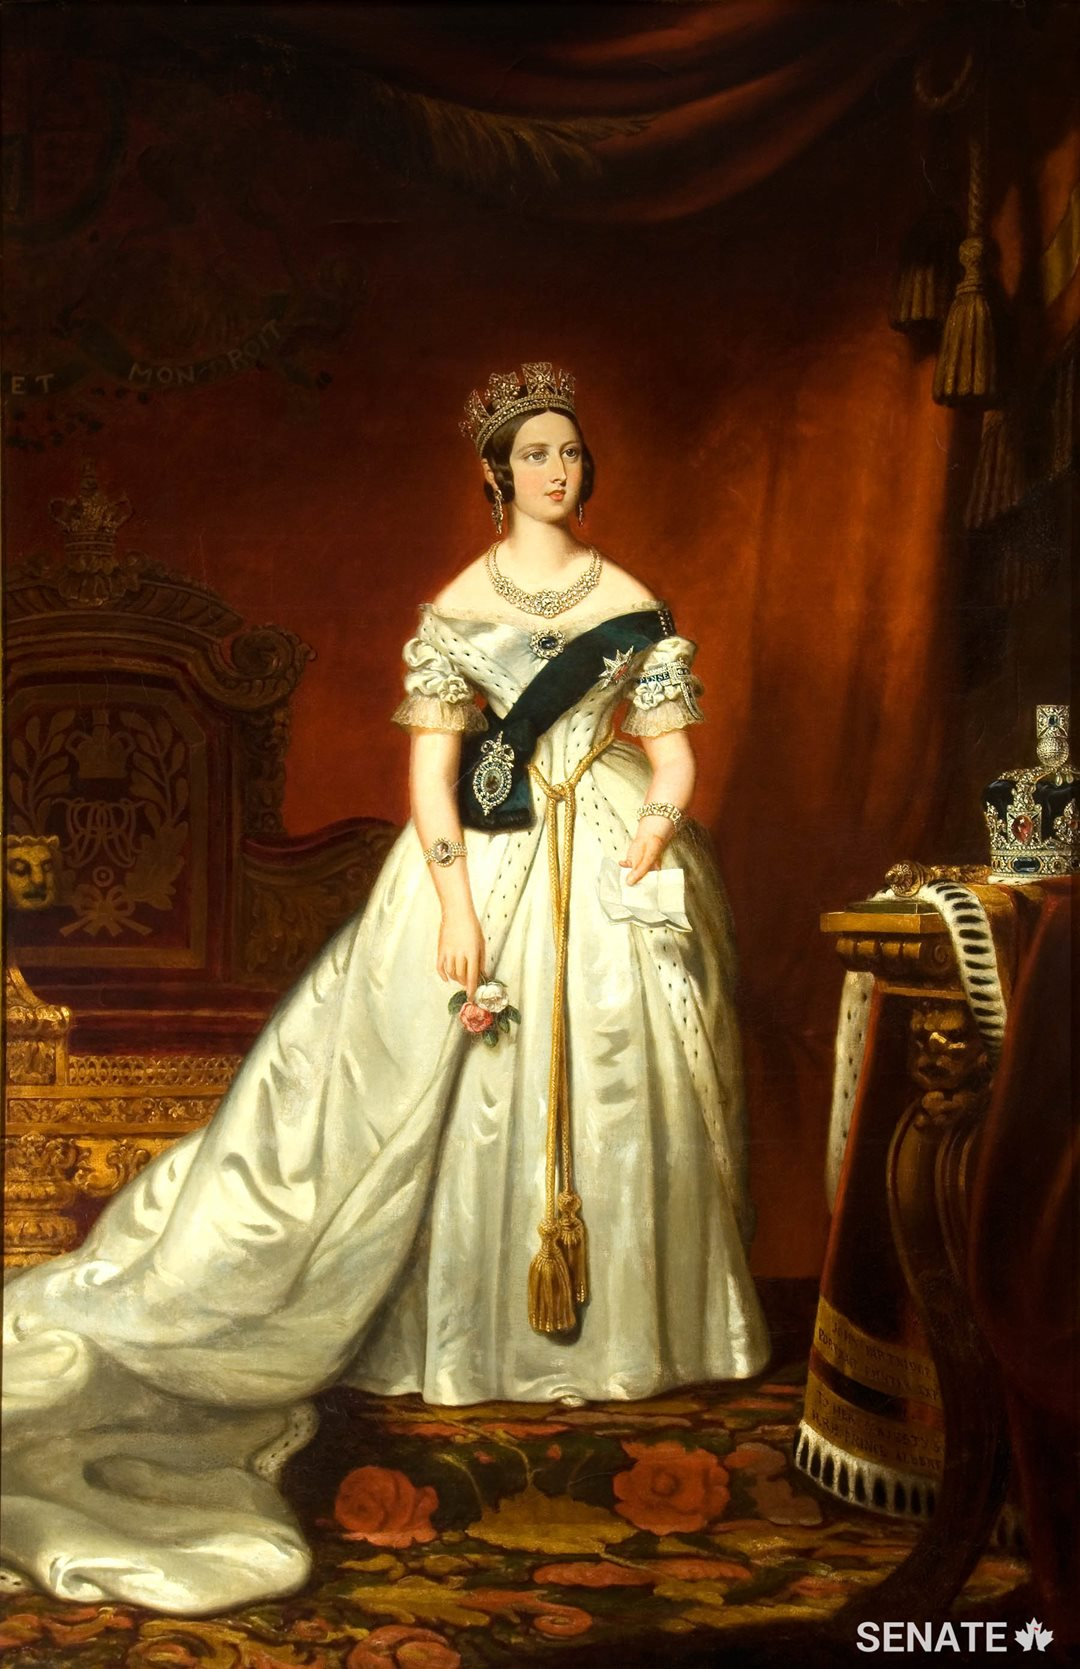 This state portrait of Queen Victoria, painted by British artist John Partridge in 1842 and brought to Canada in 1847,	 is perhaps the most recognizable work of art displayed in the Senate.